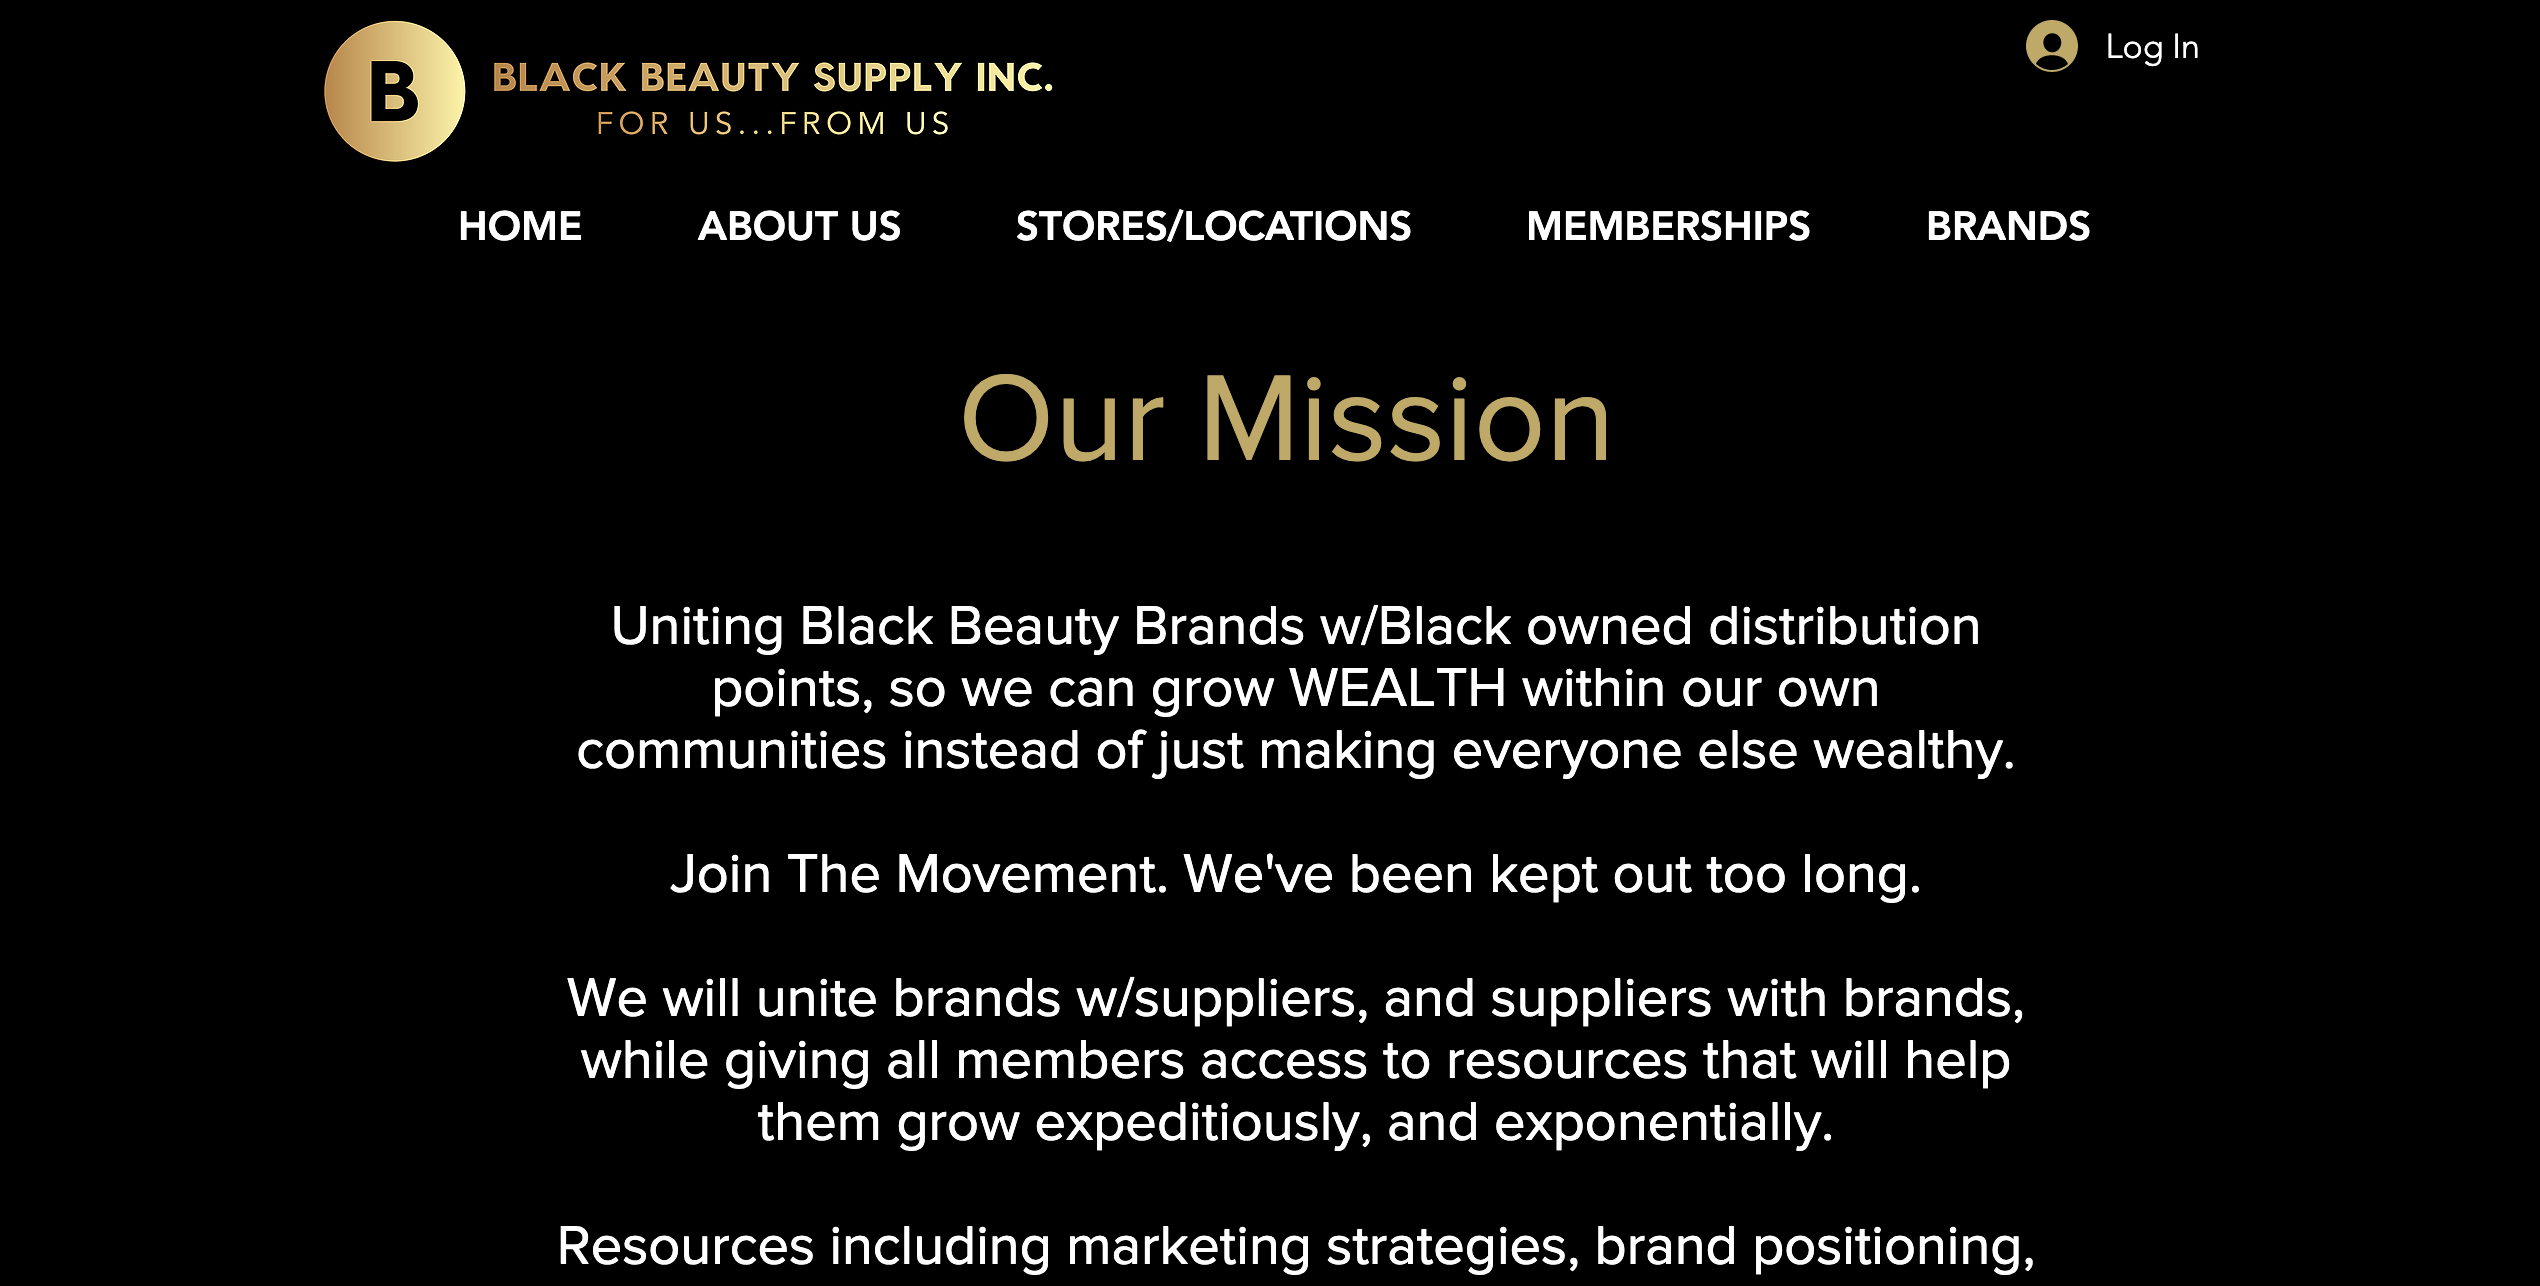 BlackBeautySupply.com